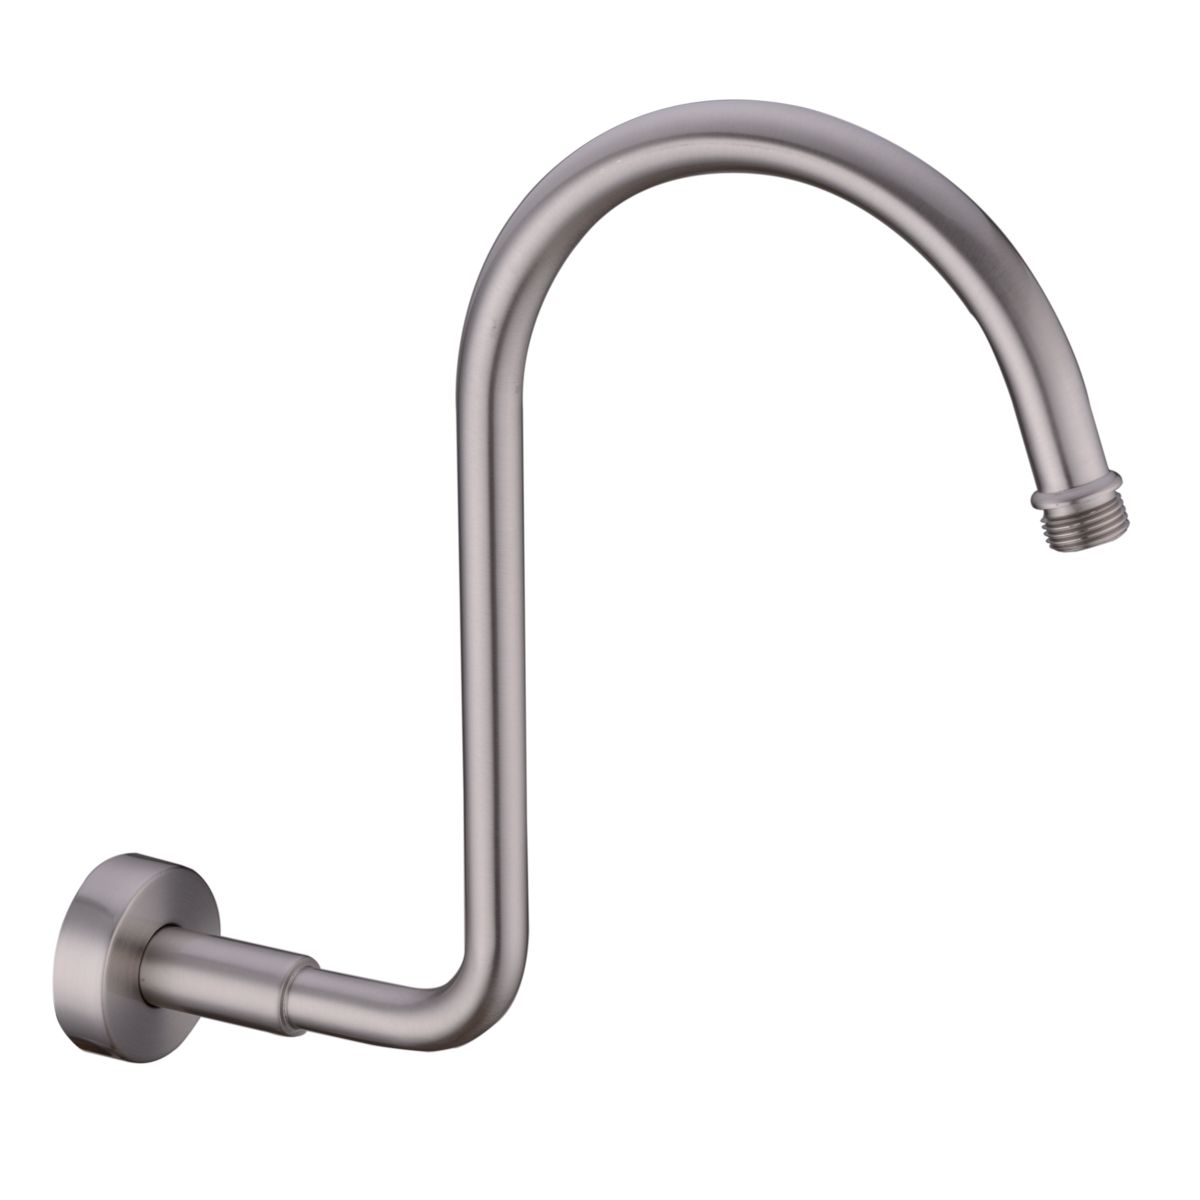 North American Standard Gooseneck Extension Shower Arm for Rainfall ...